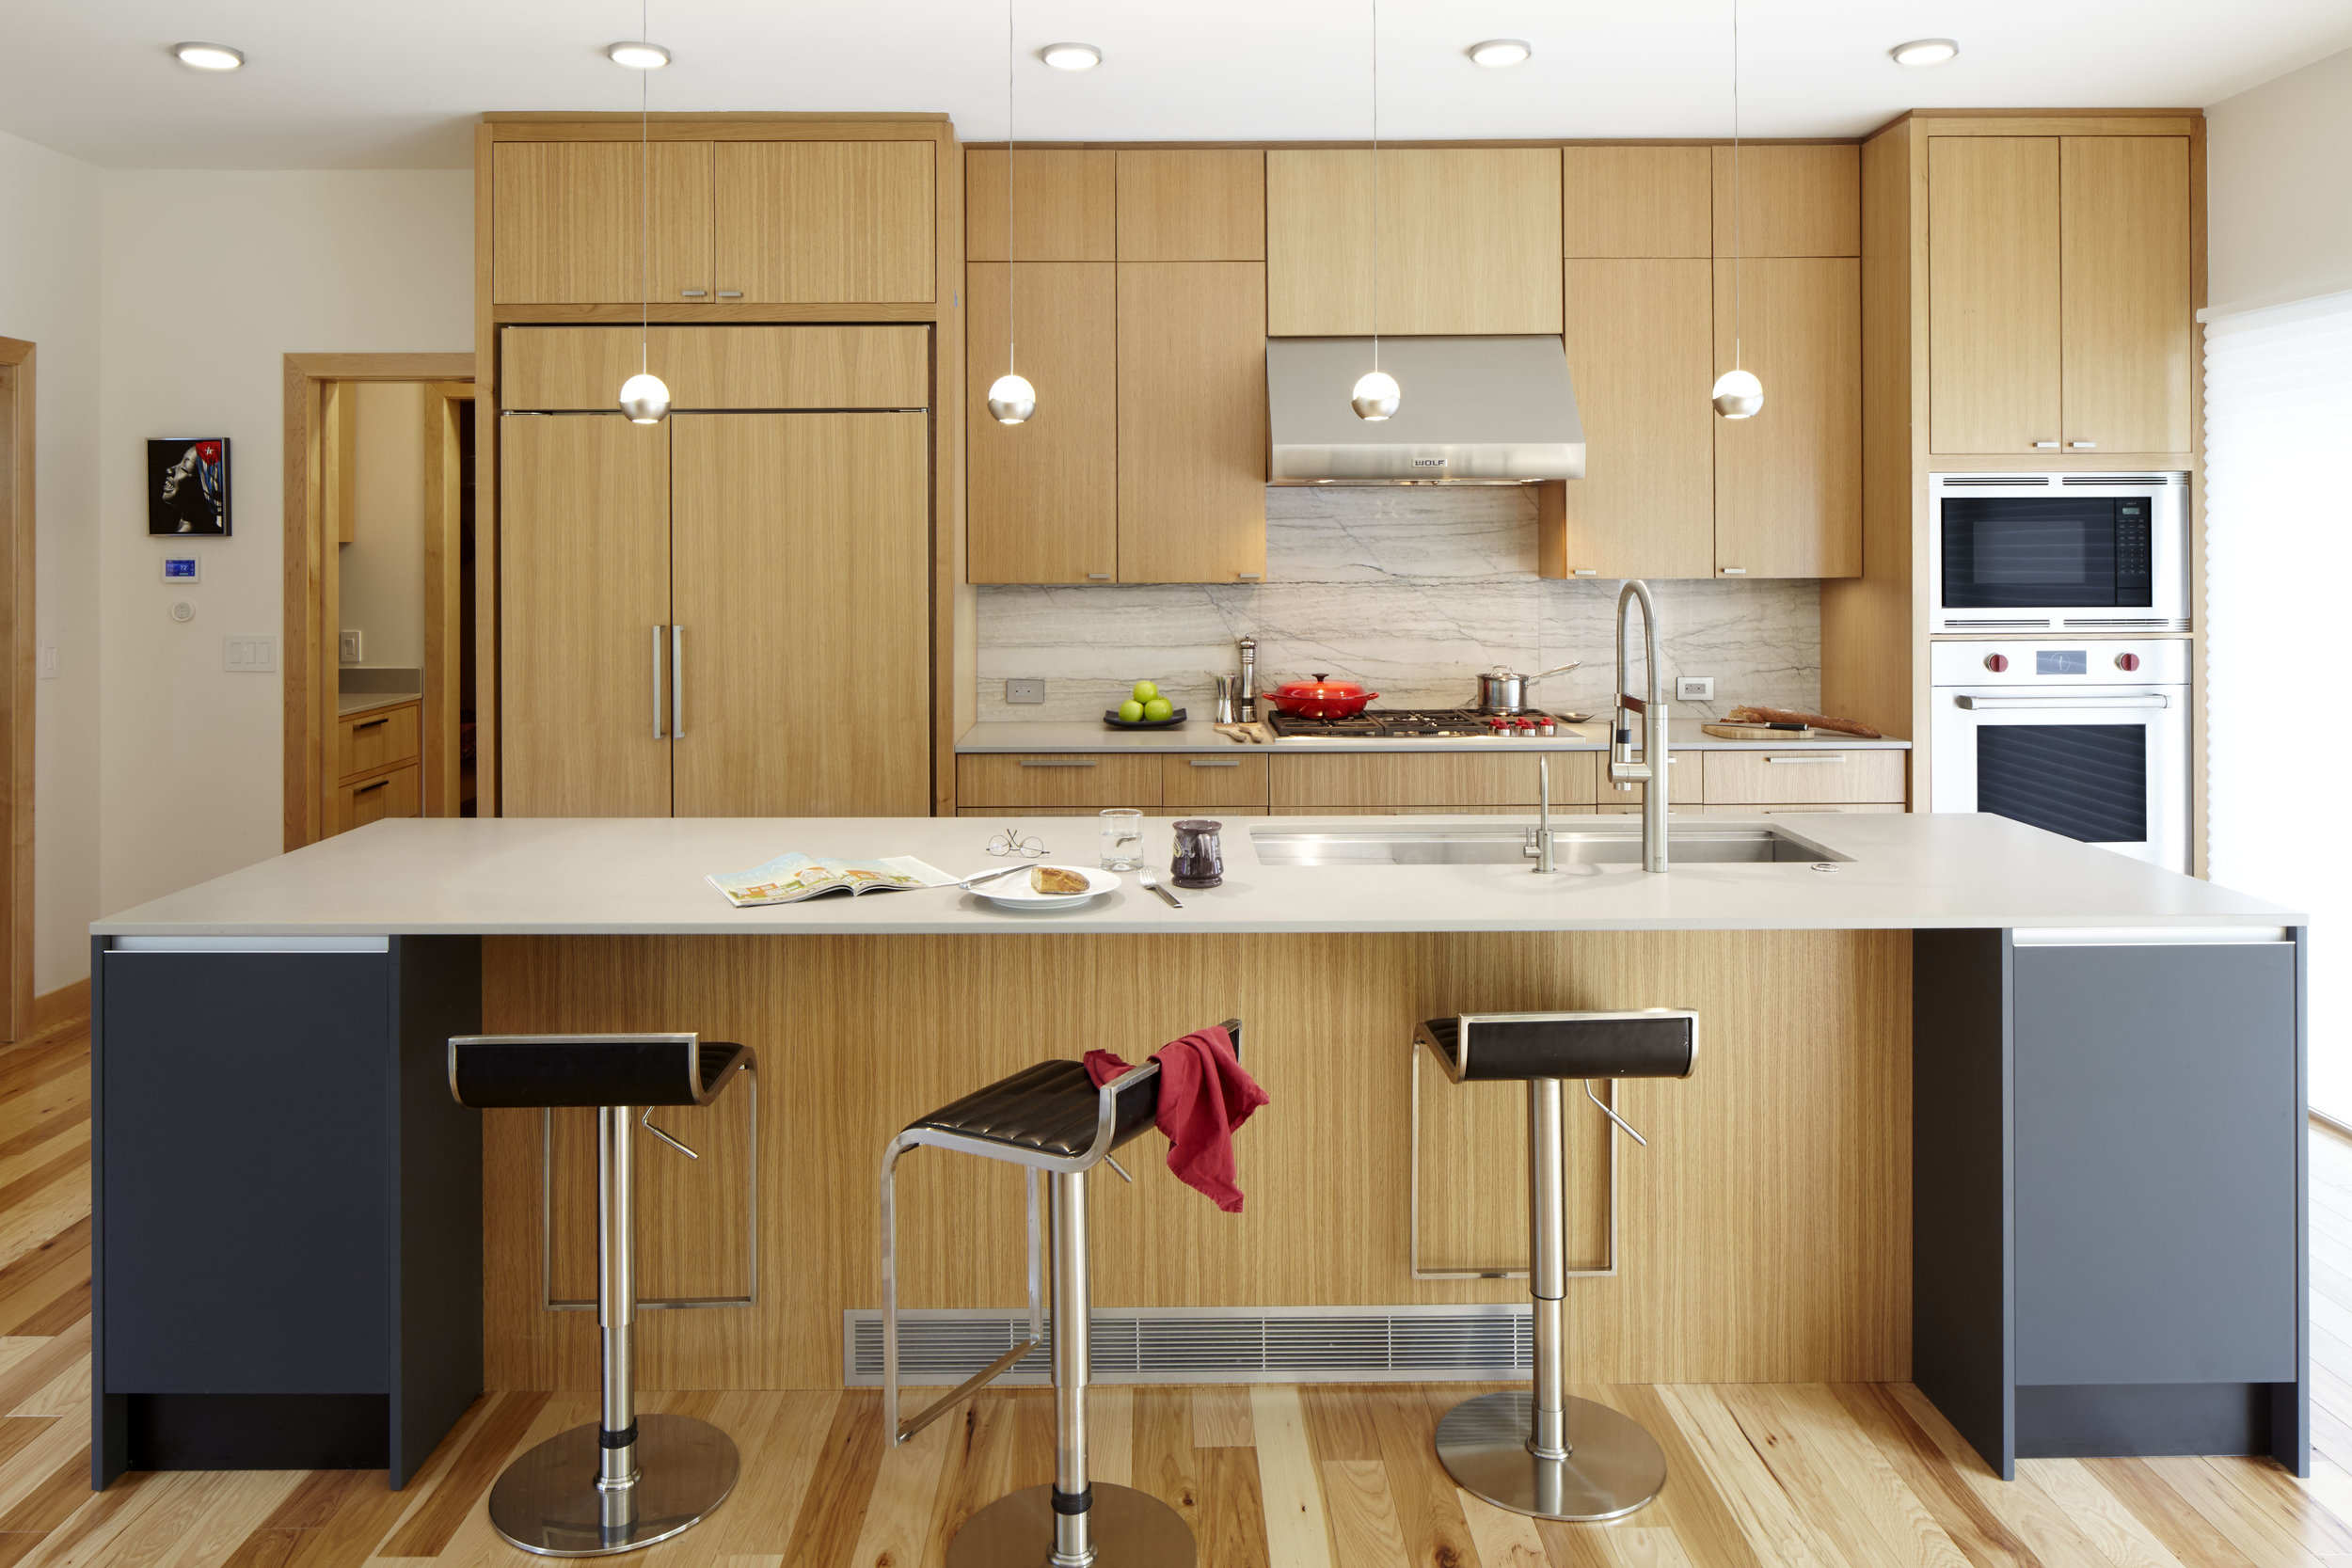 Hanson kitchen-049.jpg